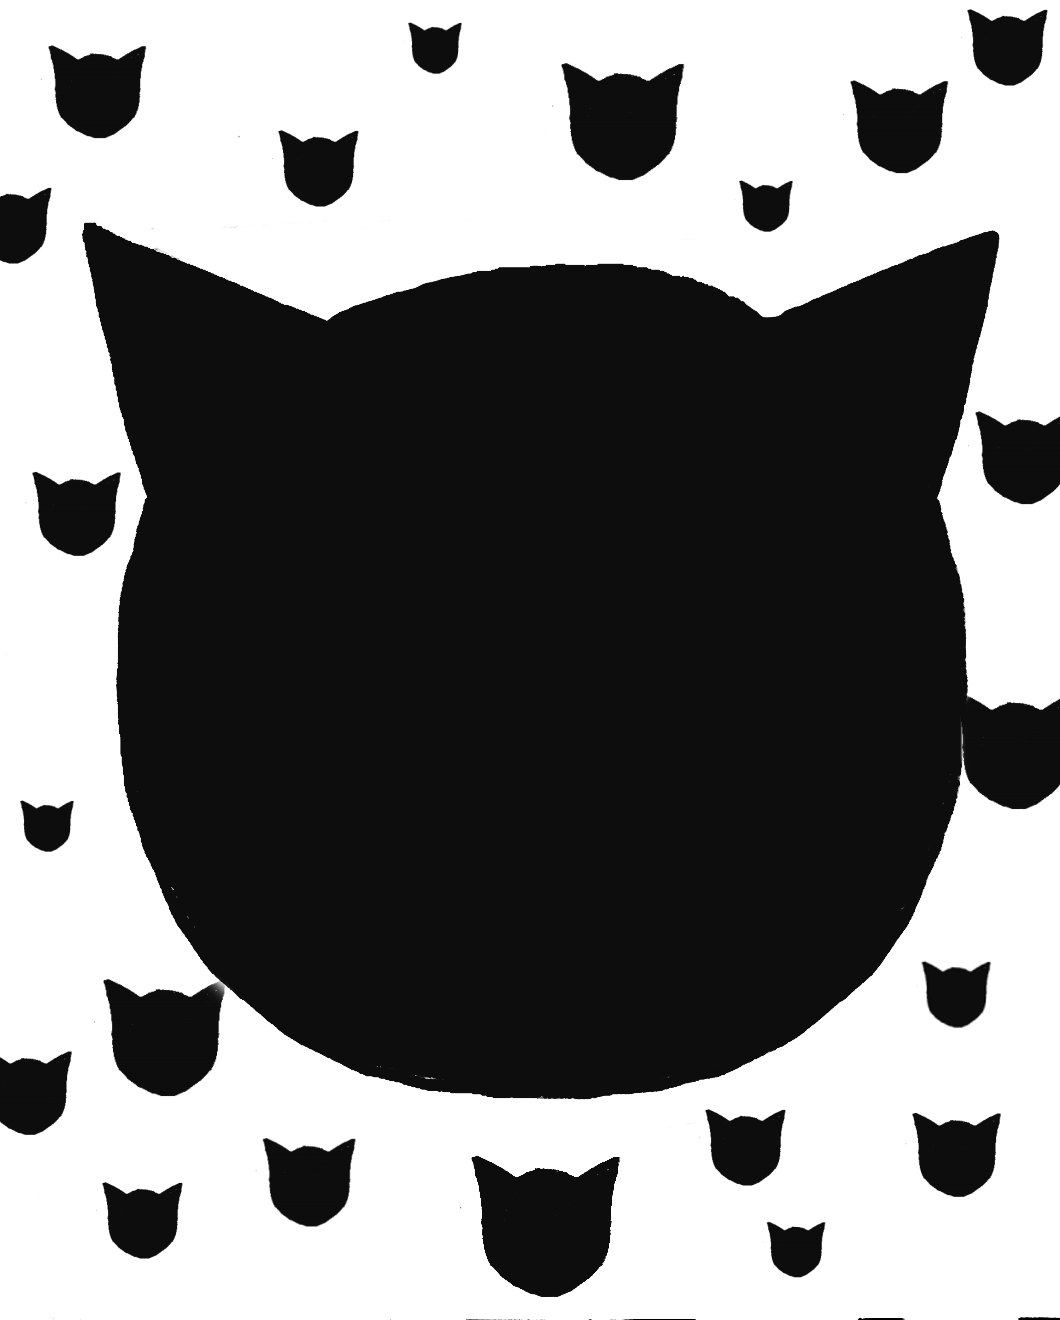 1060x1320 Cat Face Silhouette